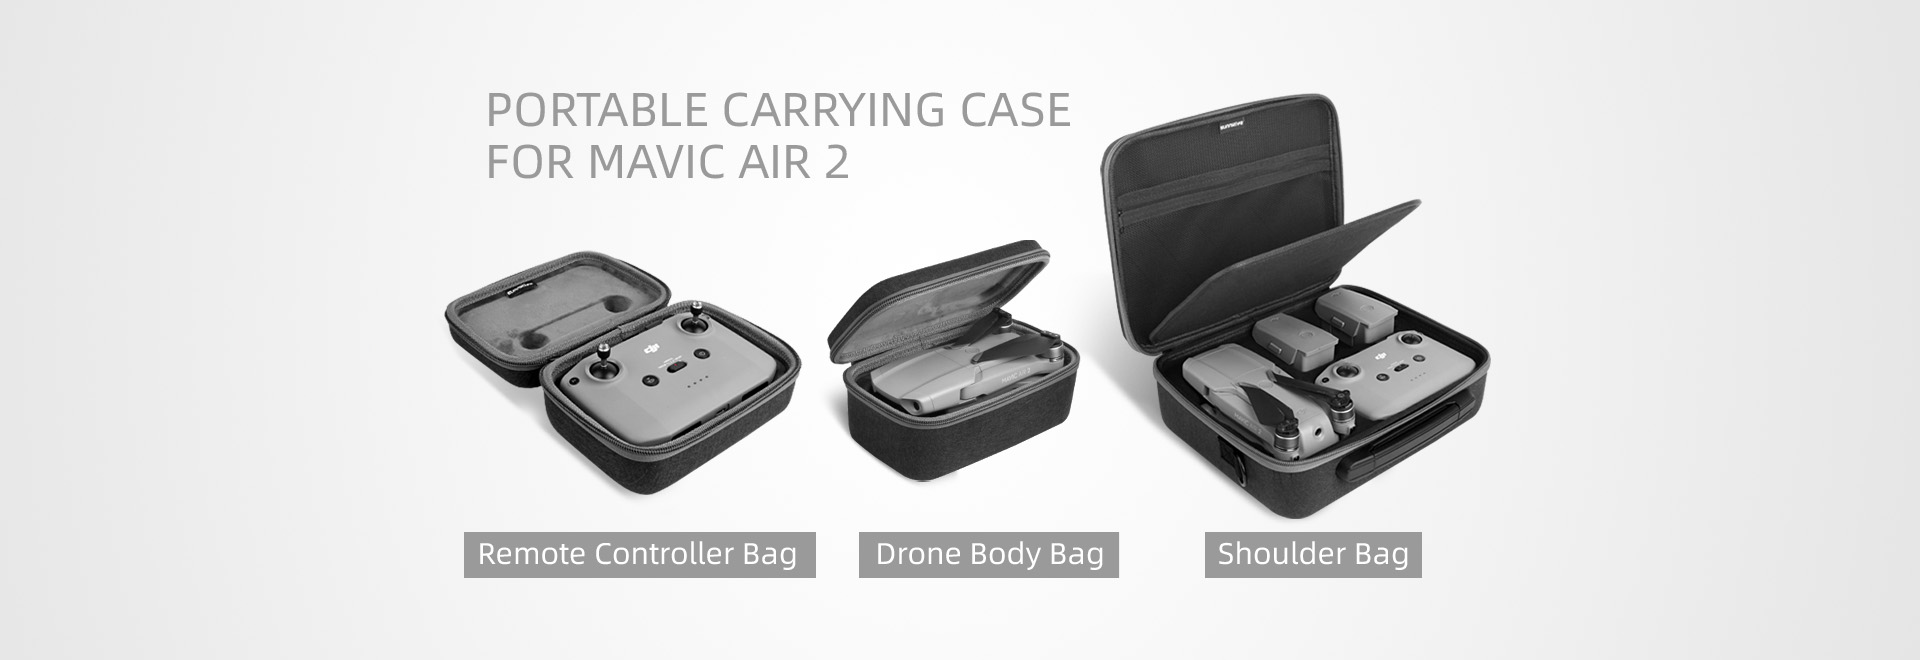 Portable Carrying Case for Mavic Air 2